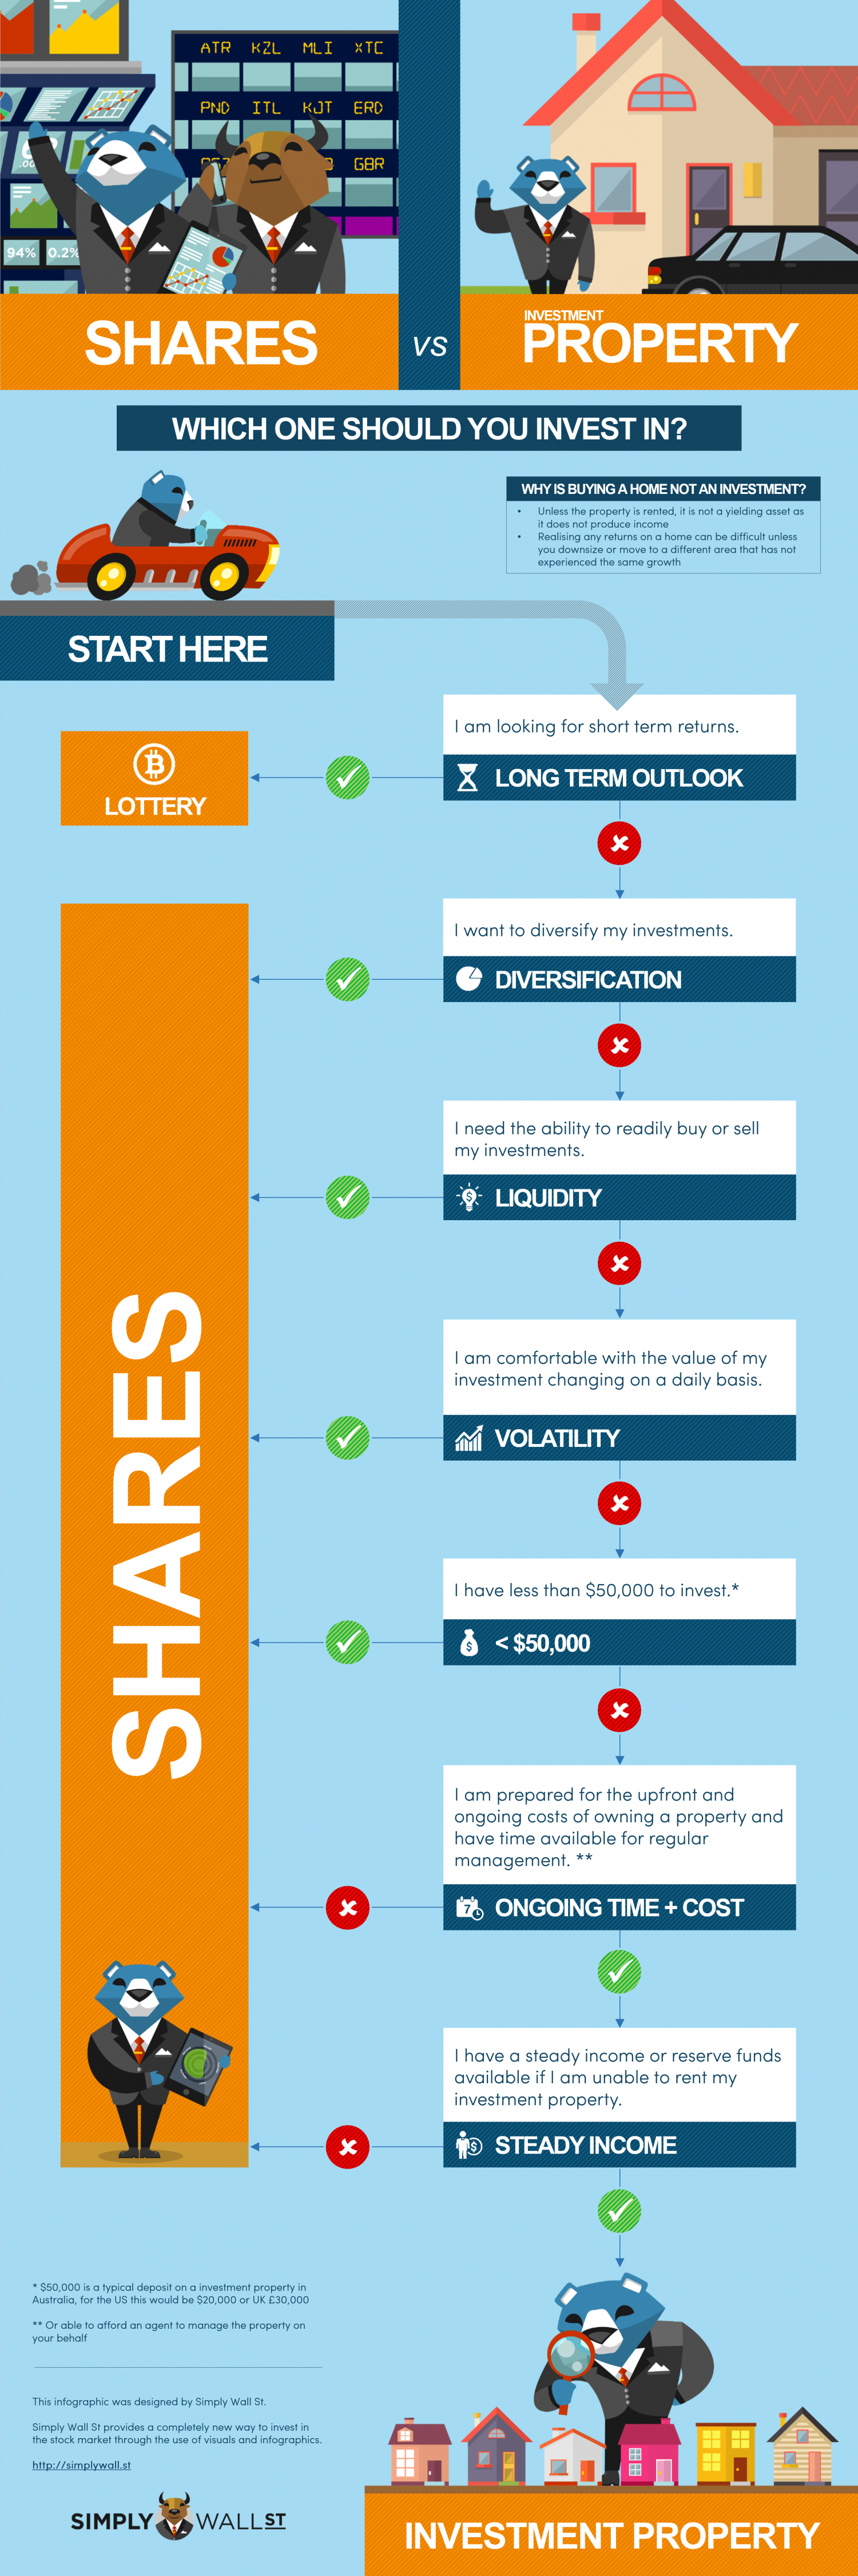 Investing in Shares vs Property Infographic